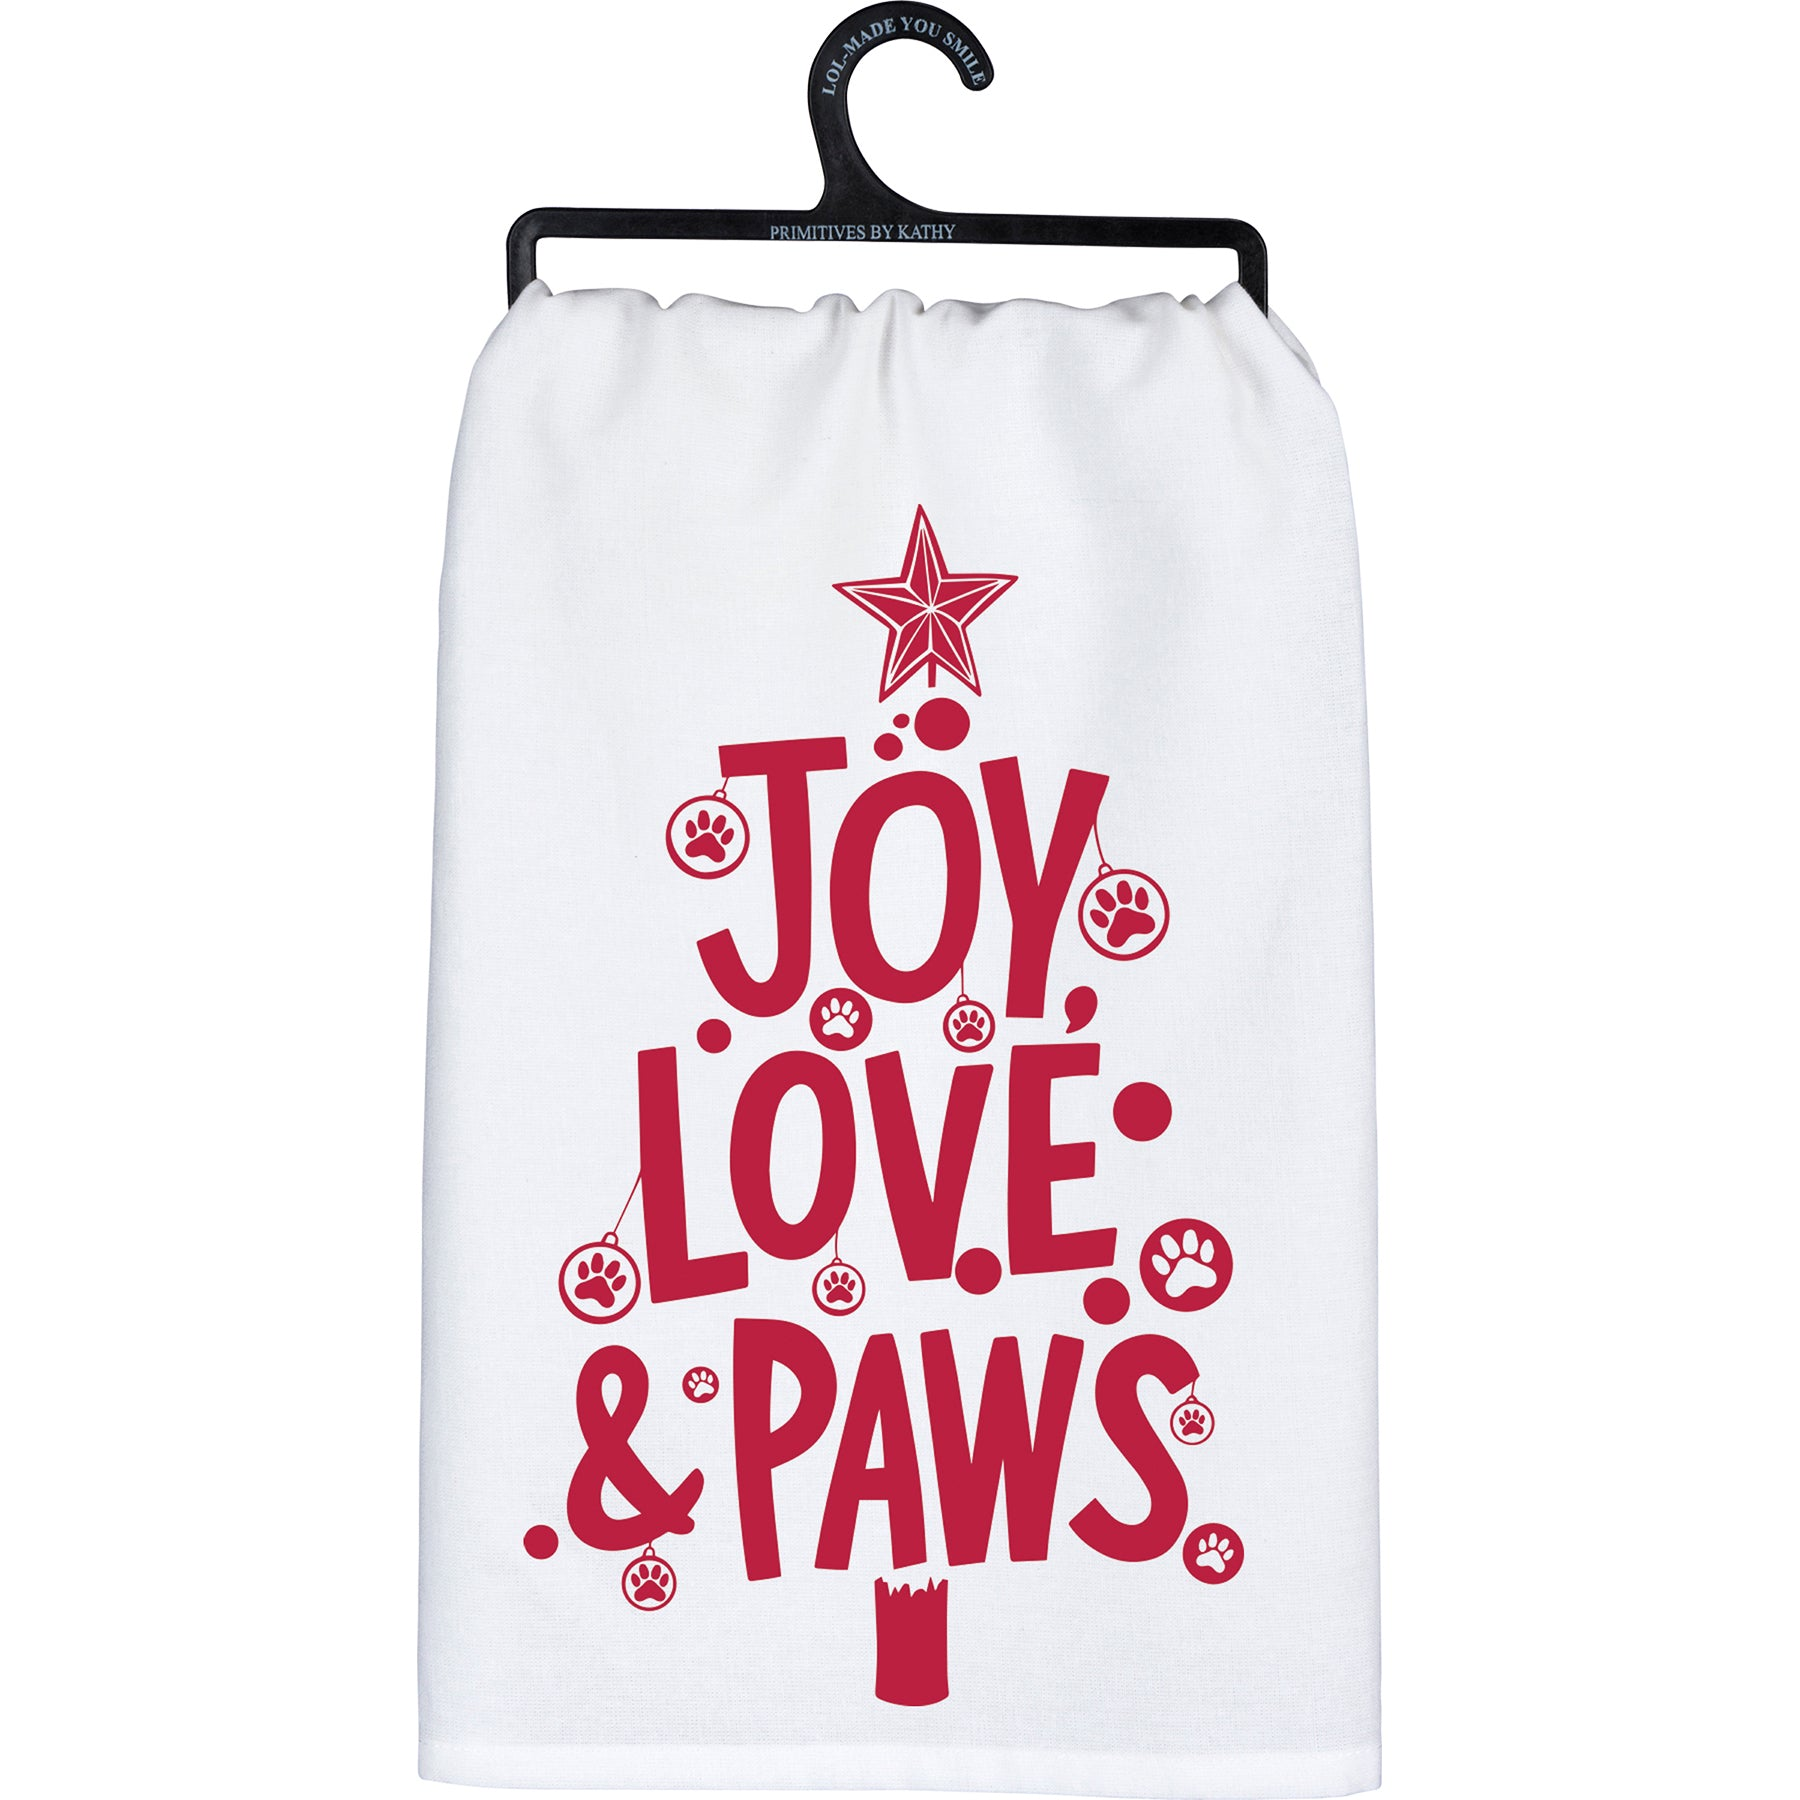 Primitives by Kathy - Dish Towel, Joy Love & Paws